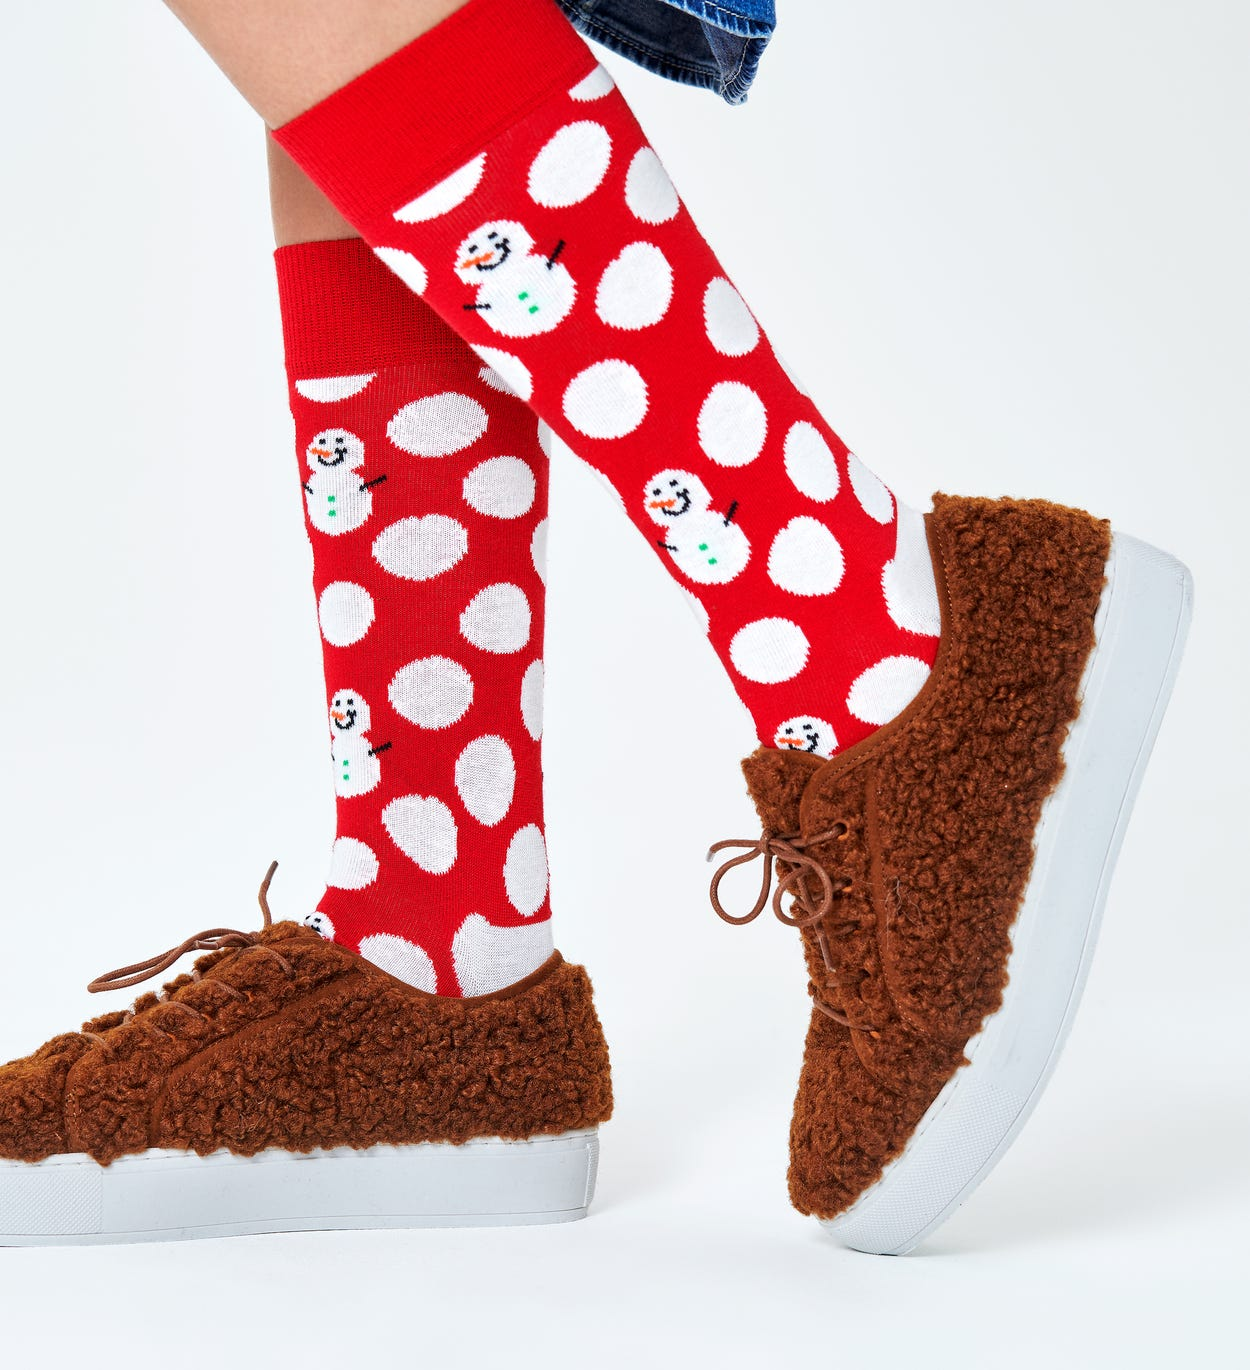 Gemusterte rote Socken: Big Dot Schneemann | Happy Socks